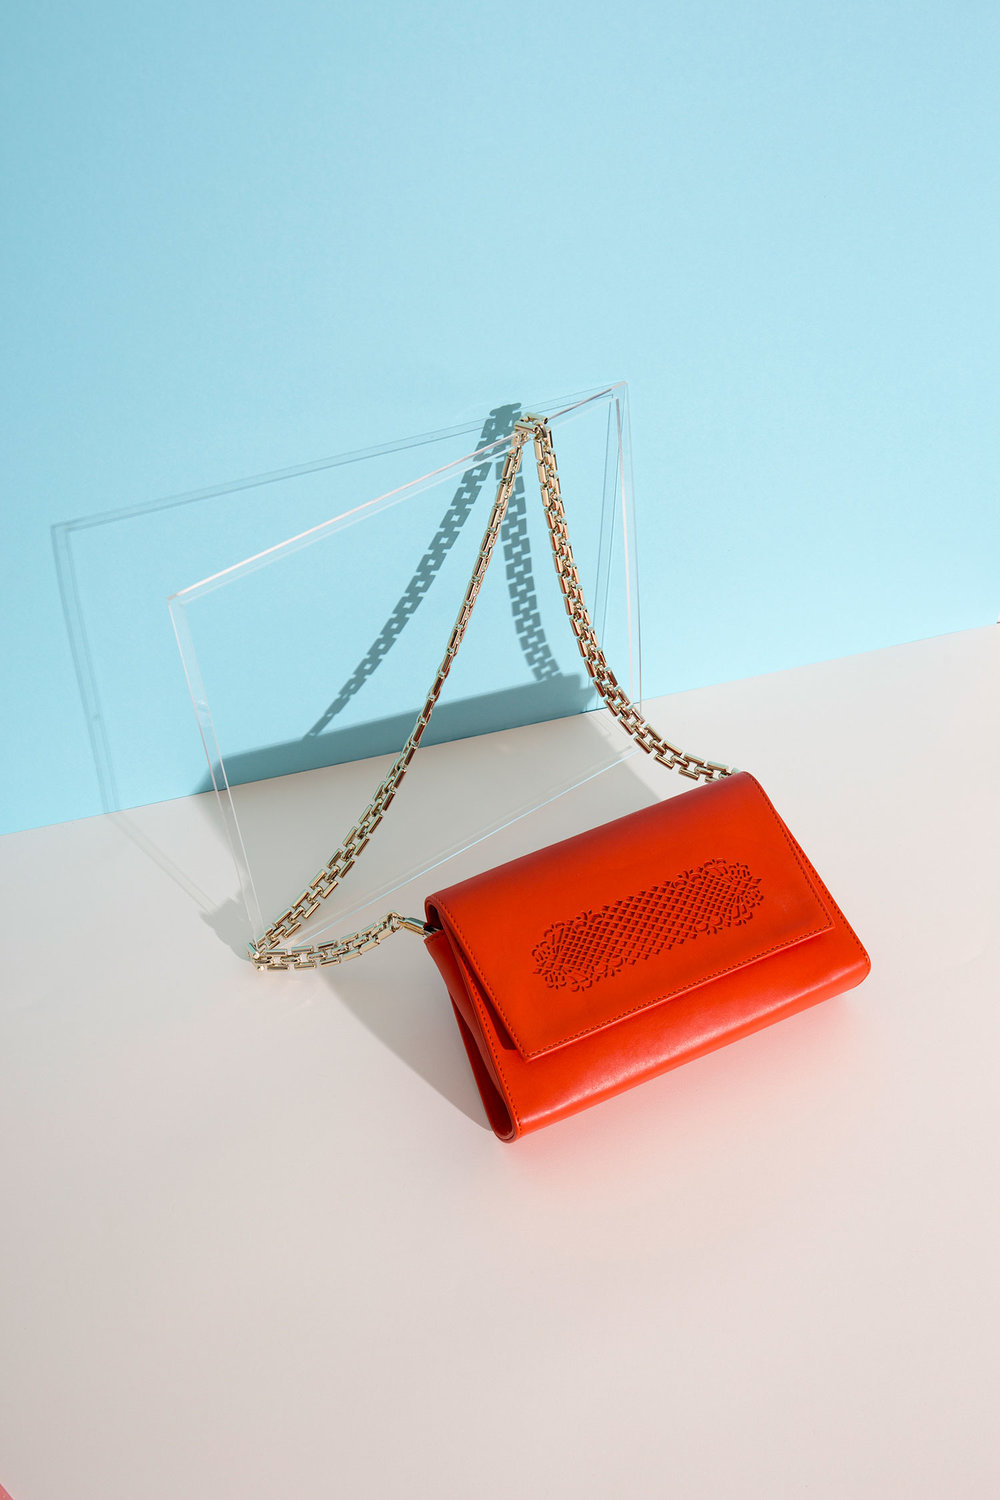 Web-4-Gold-Chain-orange-leather-clutch.jpg